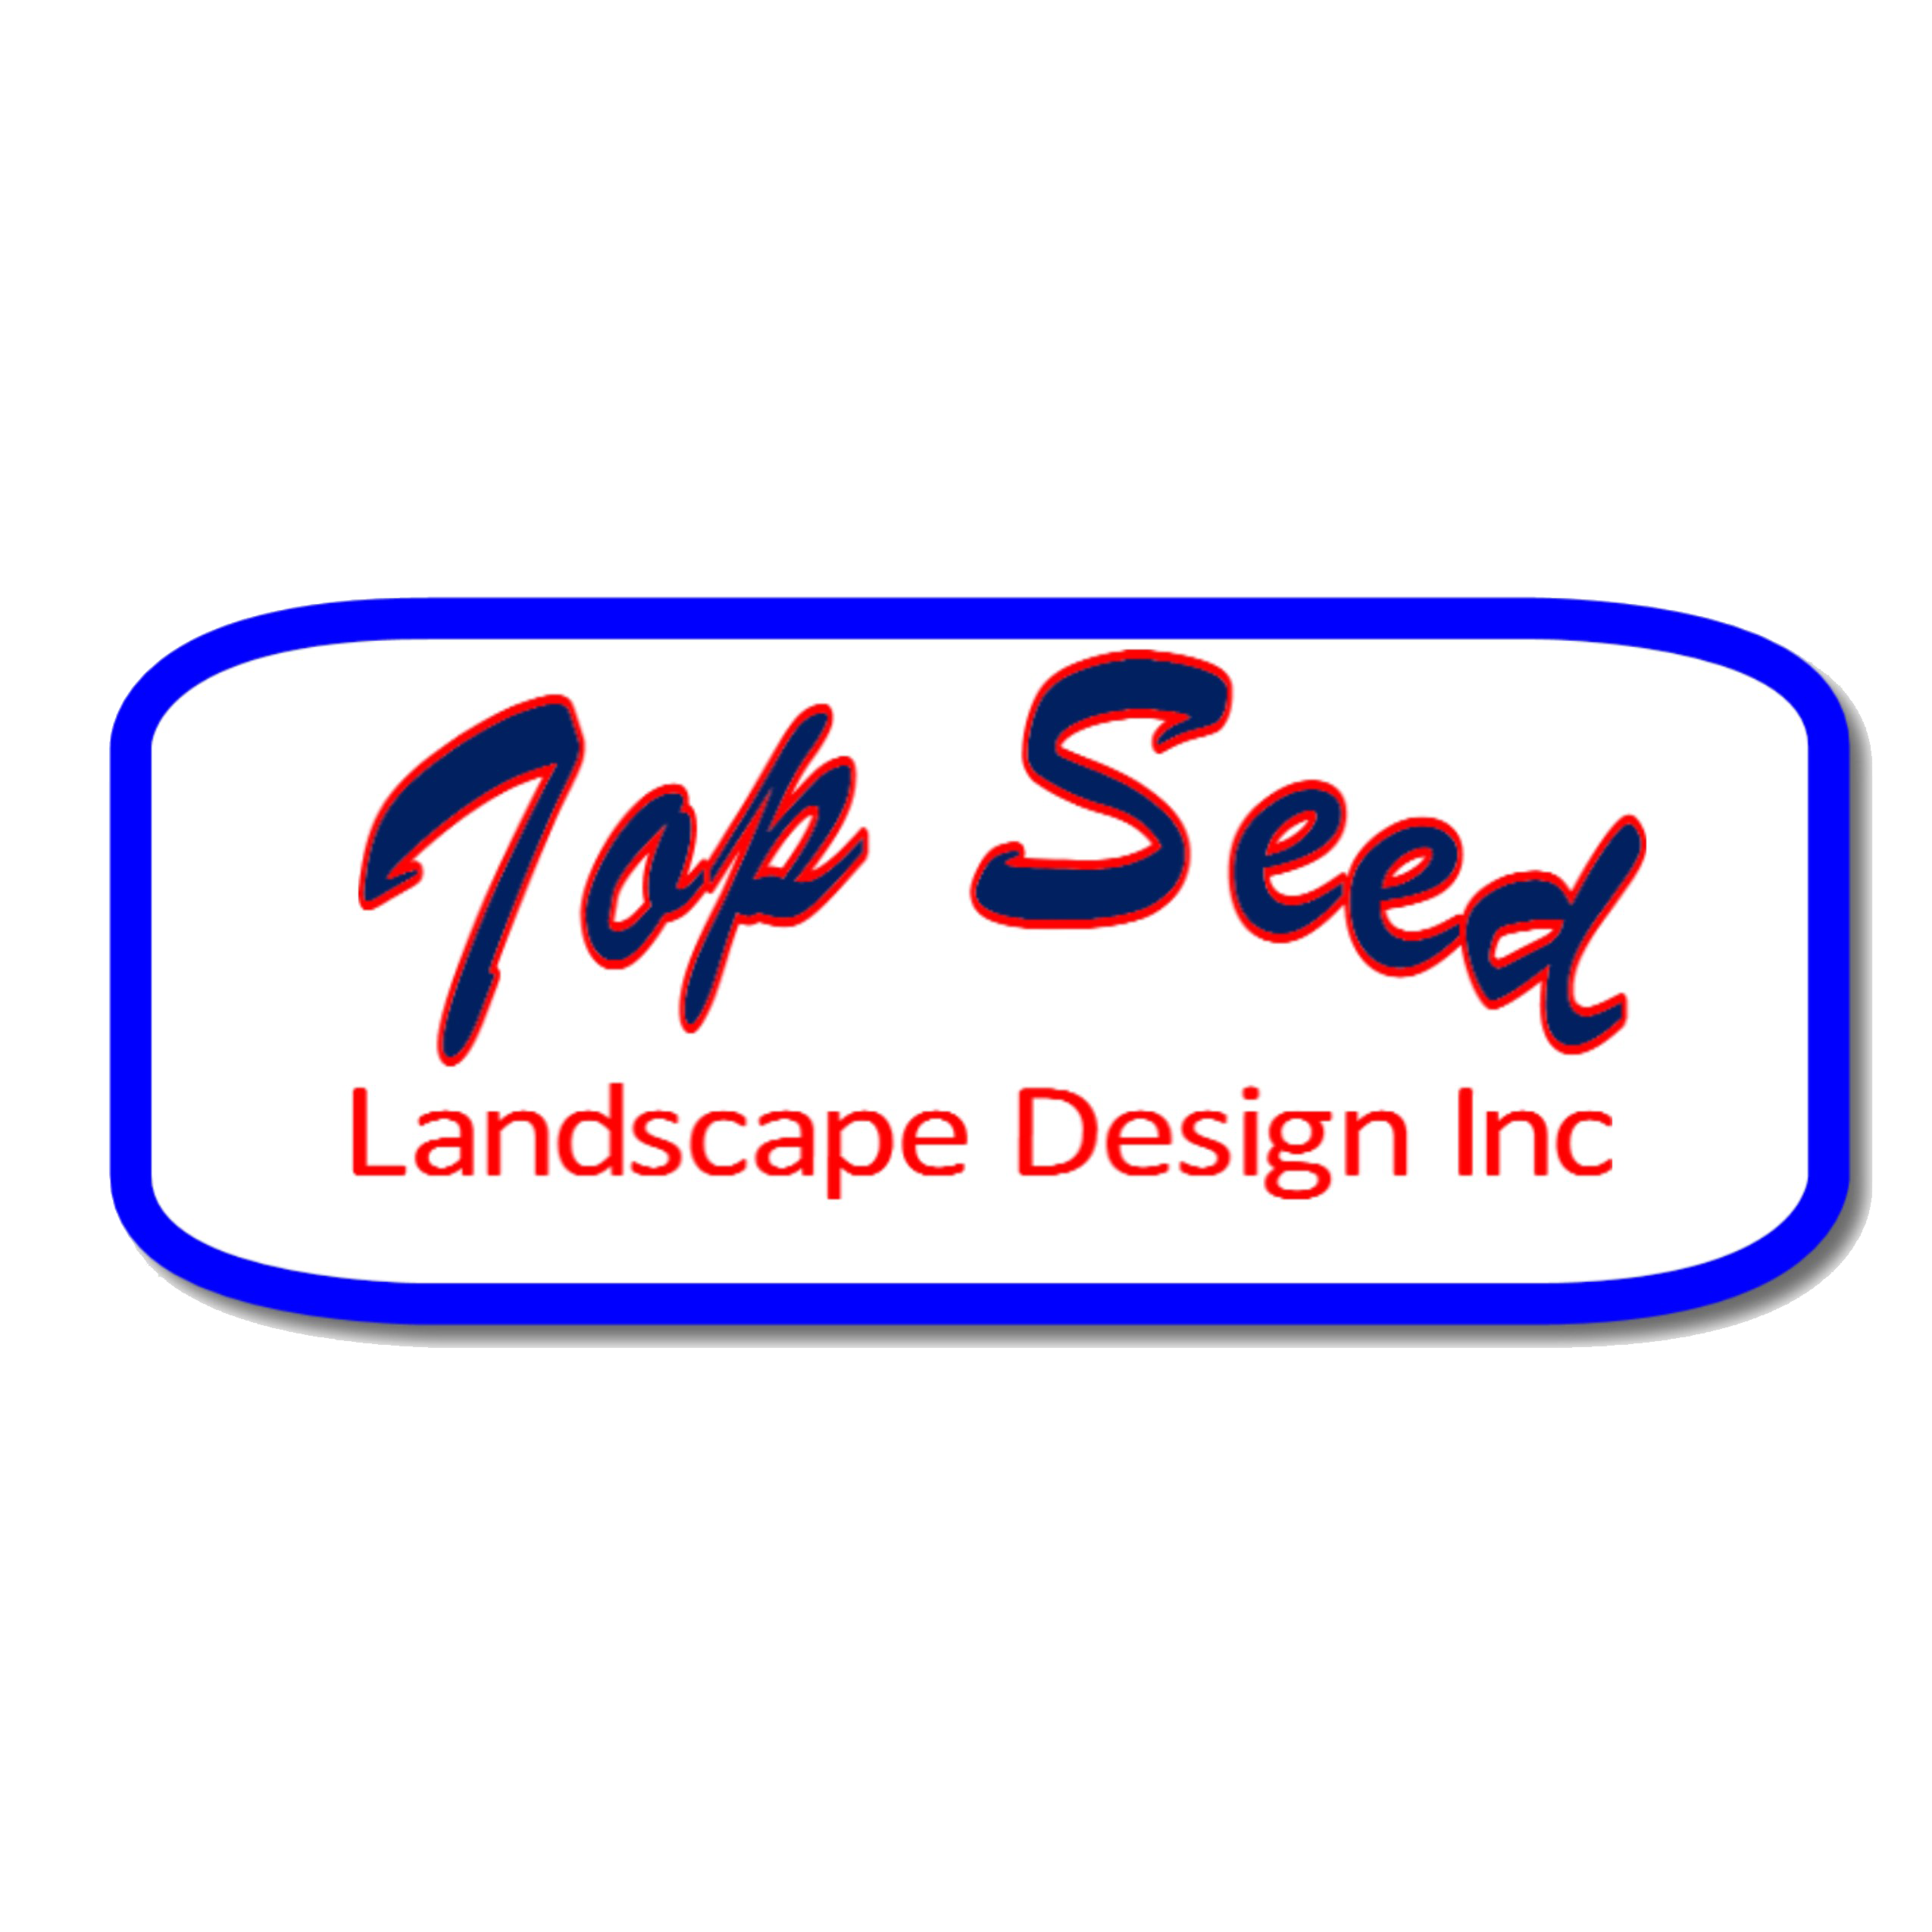 Top seed landscape design inc in milton ny 12547 for Garden design inc